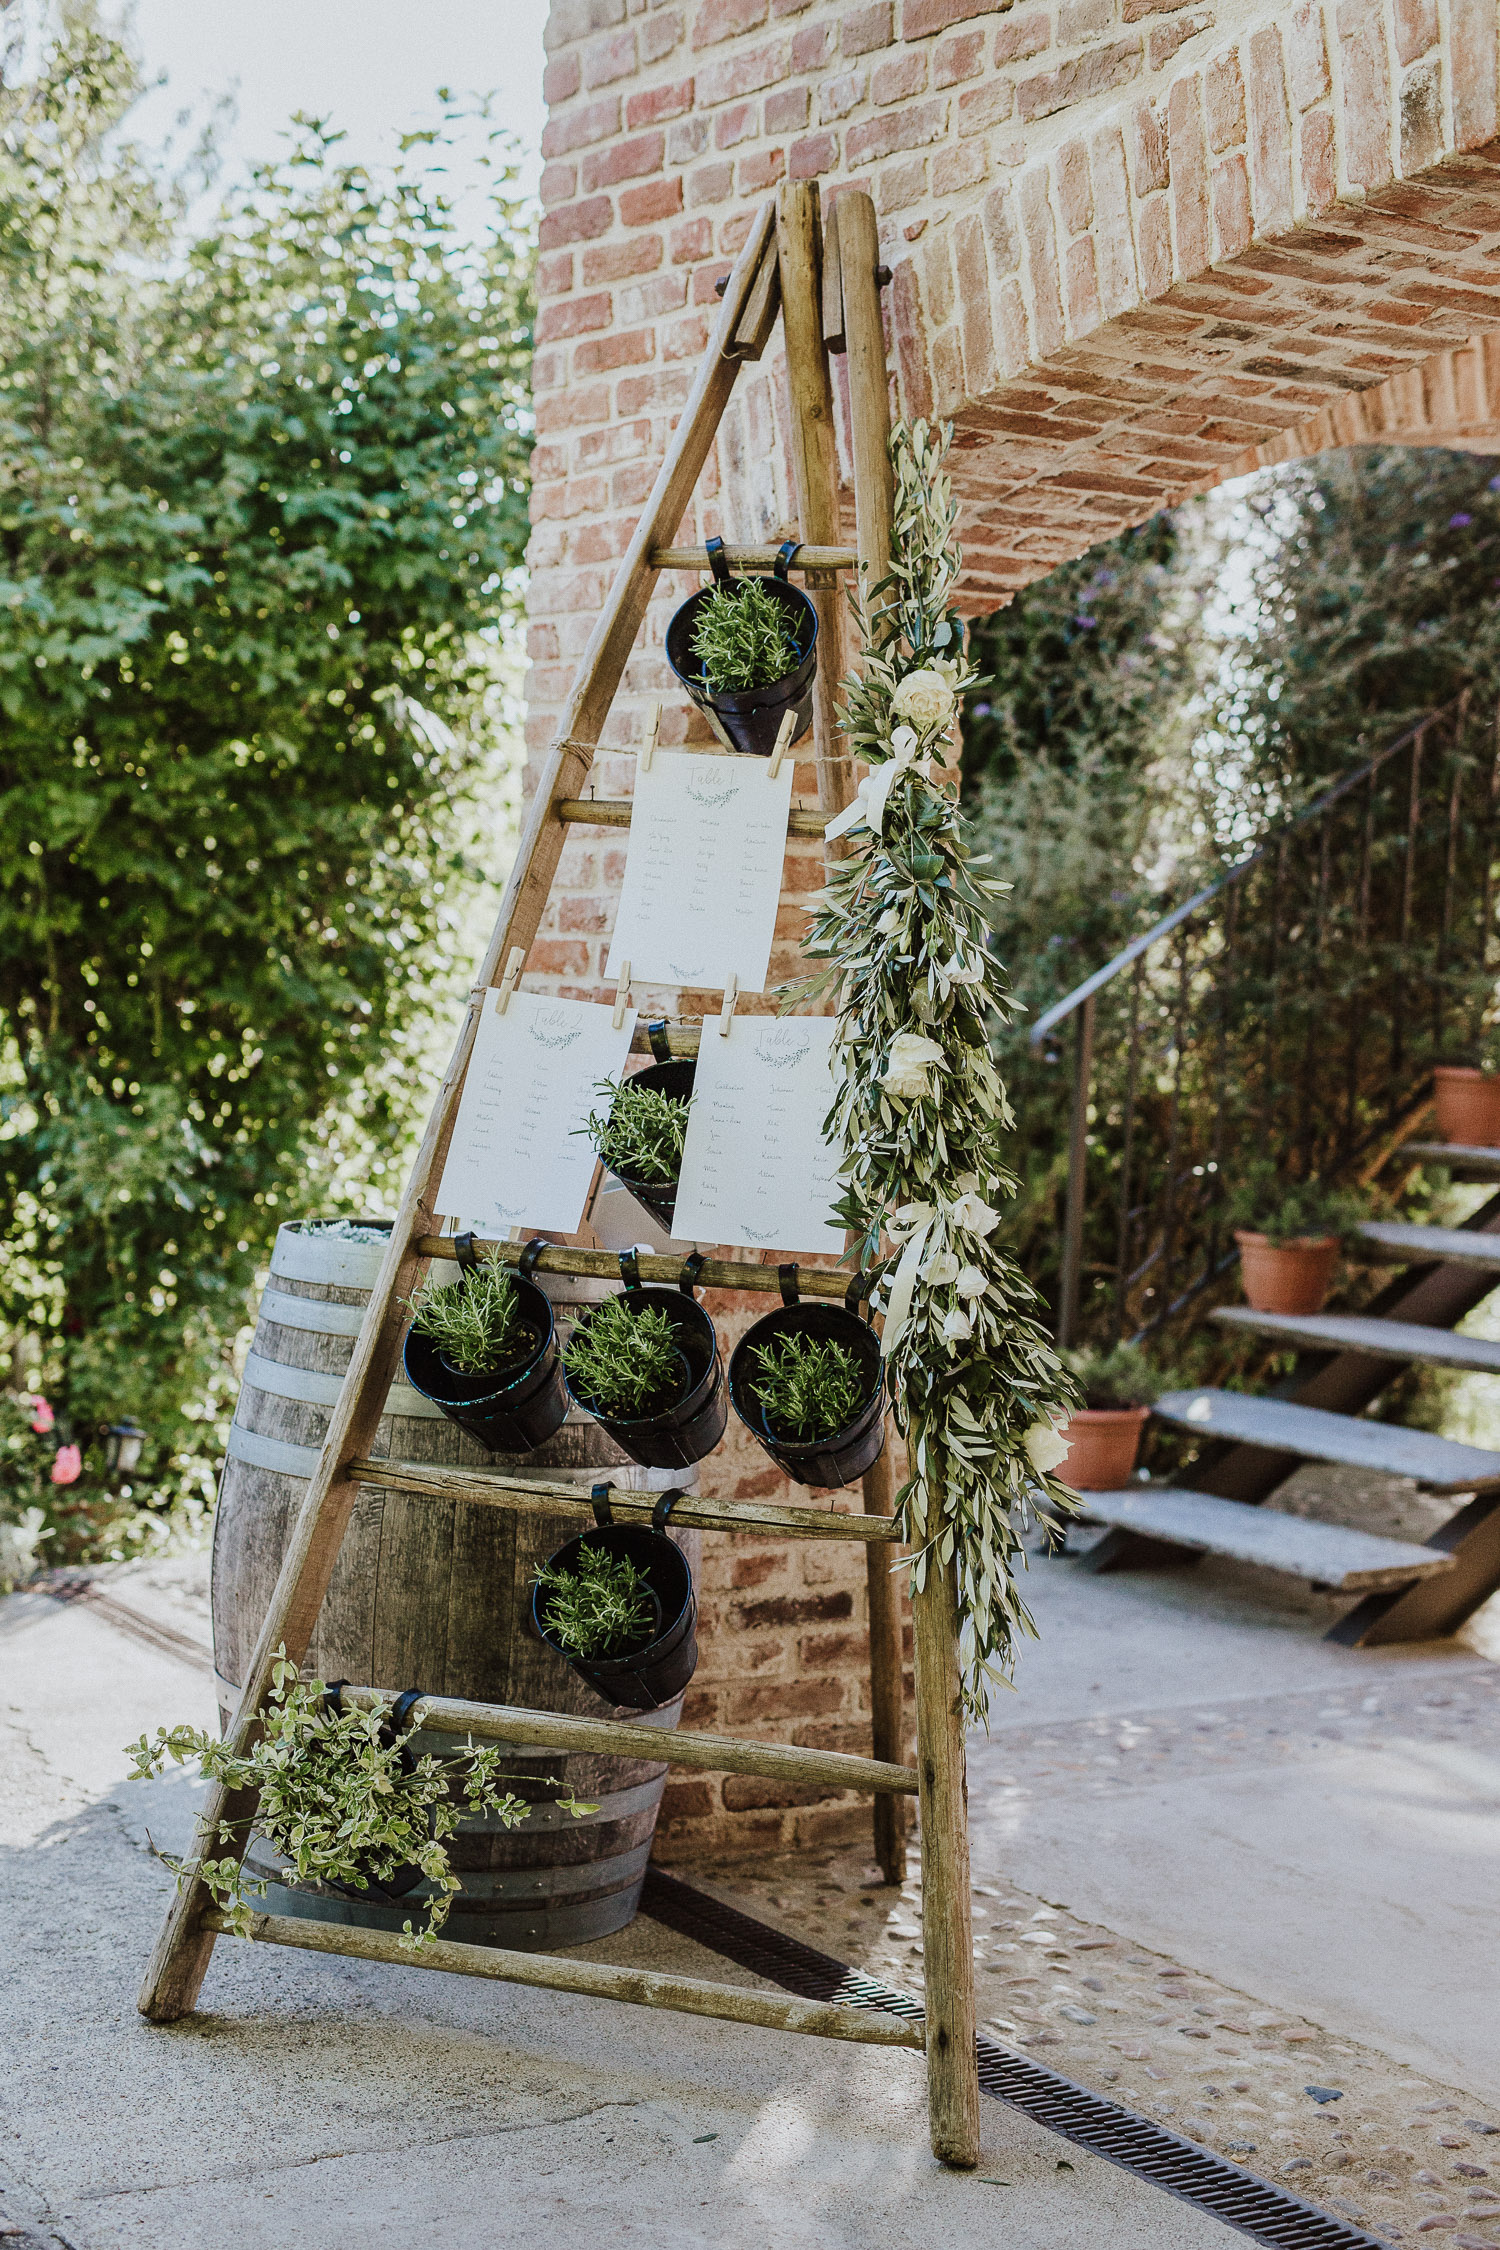 Tableau for wedding made with a wooden ladder